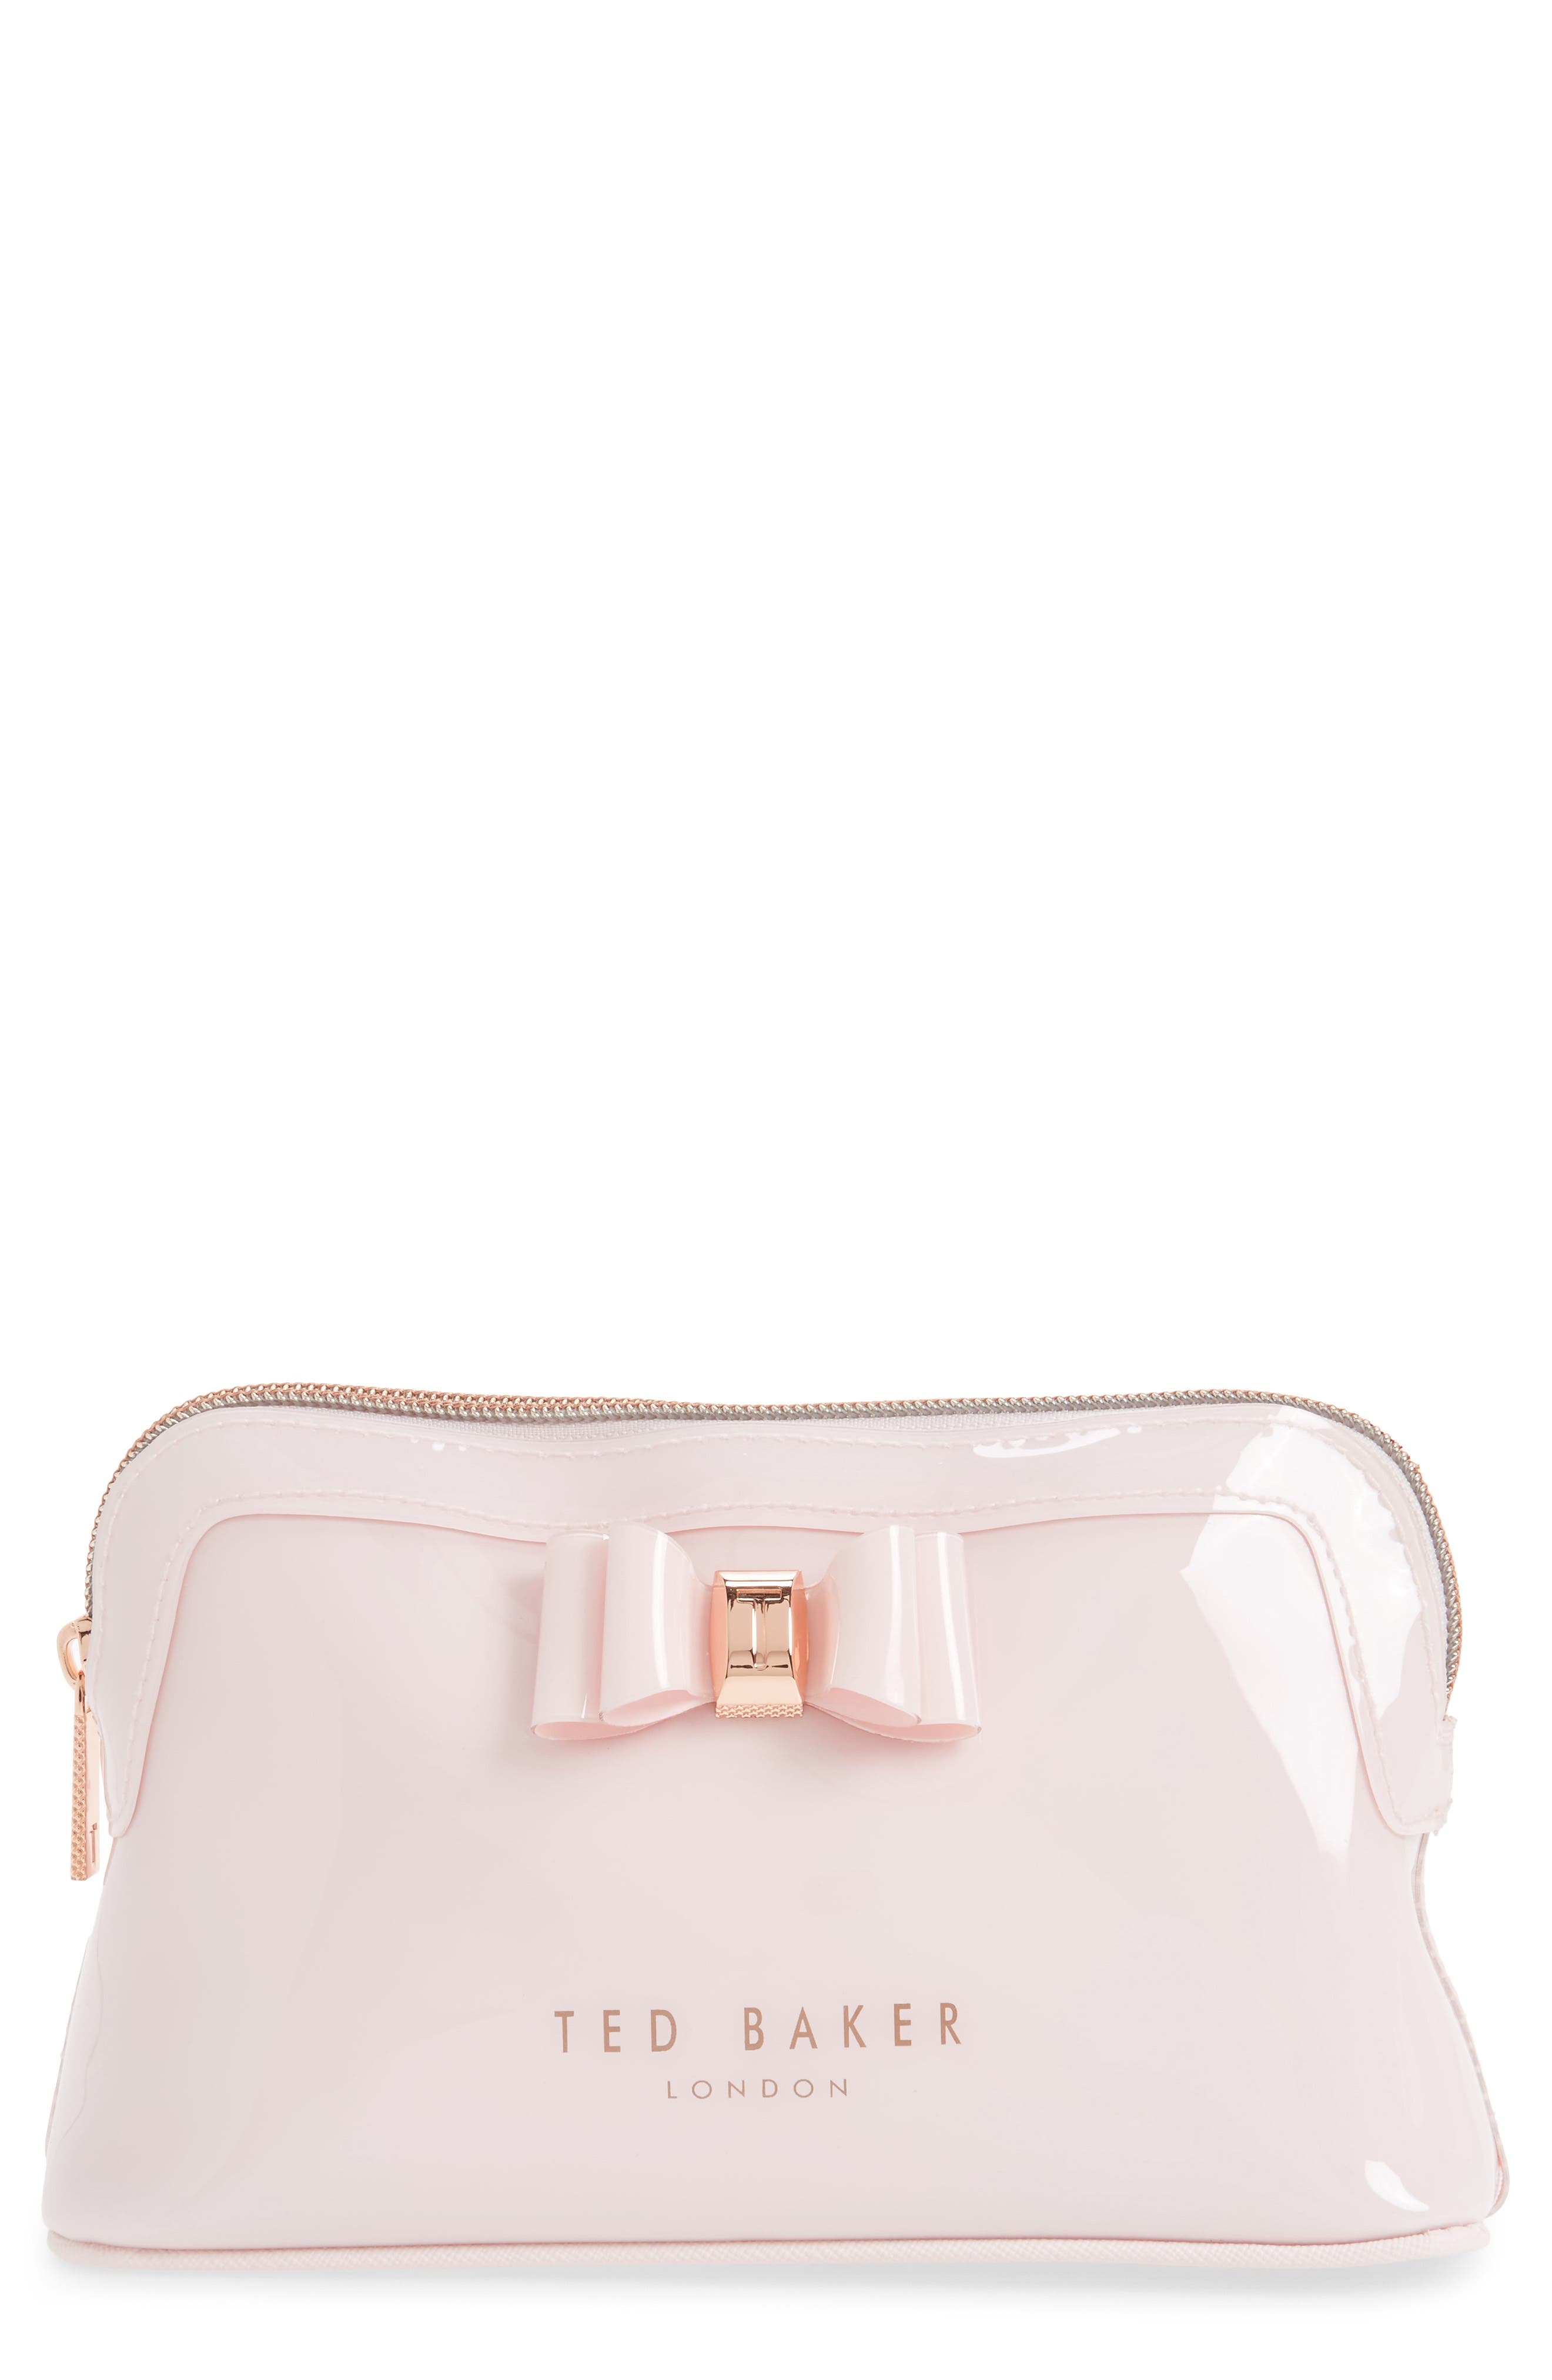 Ted Baker London Julis Bow PVC Cosmetics Case